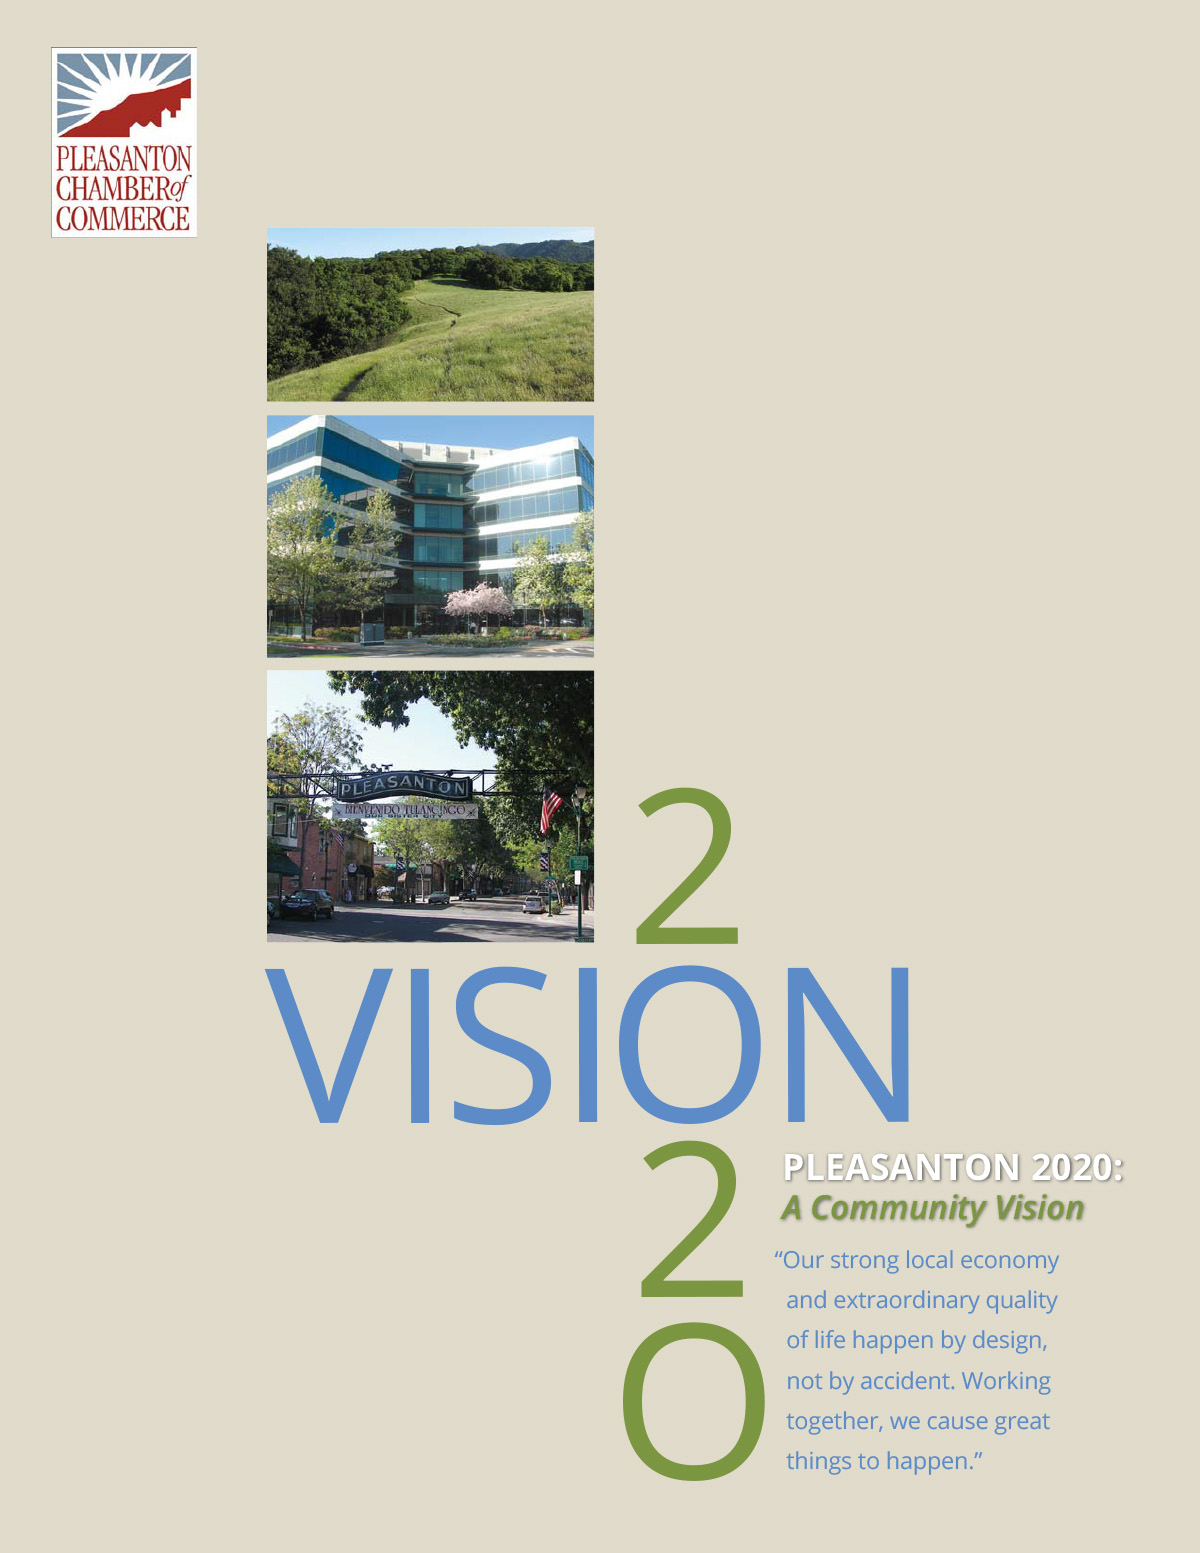 2020: A Community Vision - Pleasanton Chamber of Commerce, CA